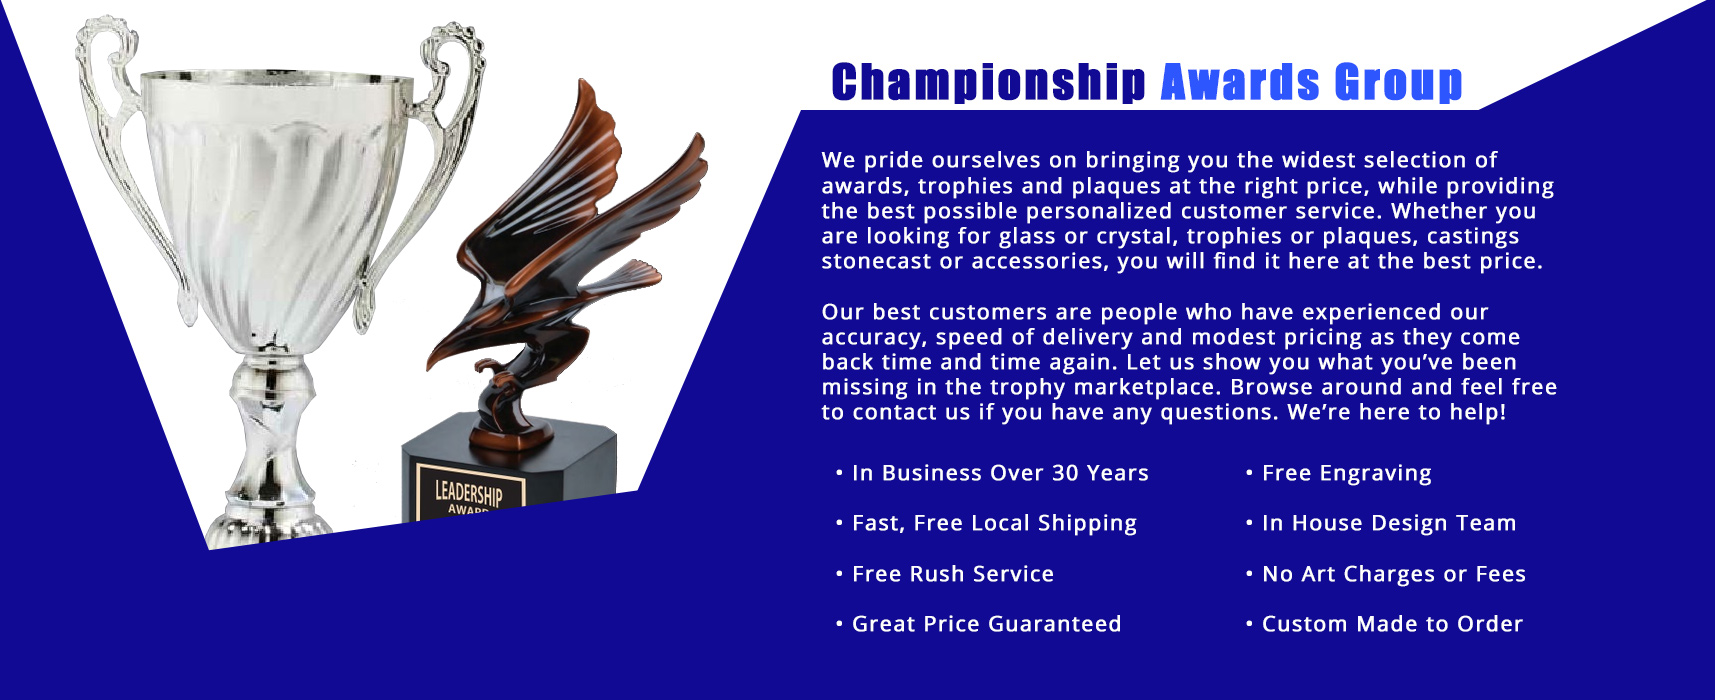 fast free shipping. Free rush service. Free engraving. No art charges or extra fees. Custom made to order. Great price guaranteed on trophies, awards, plaques, and more